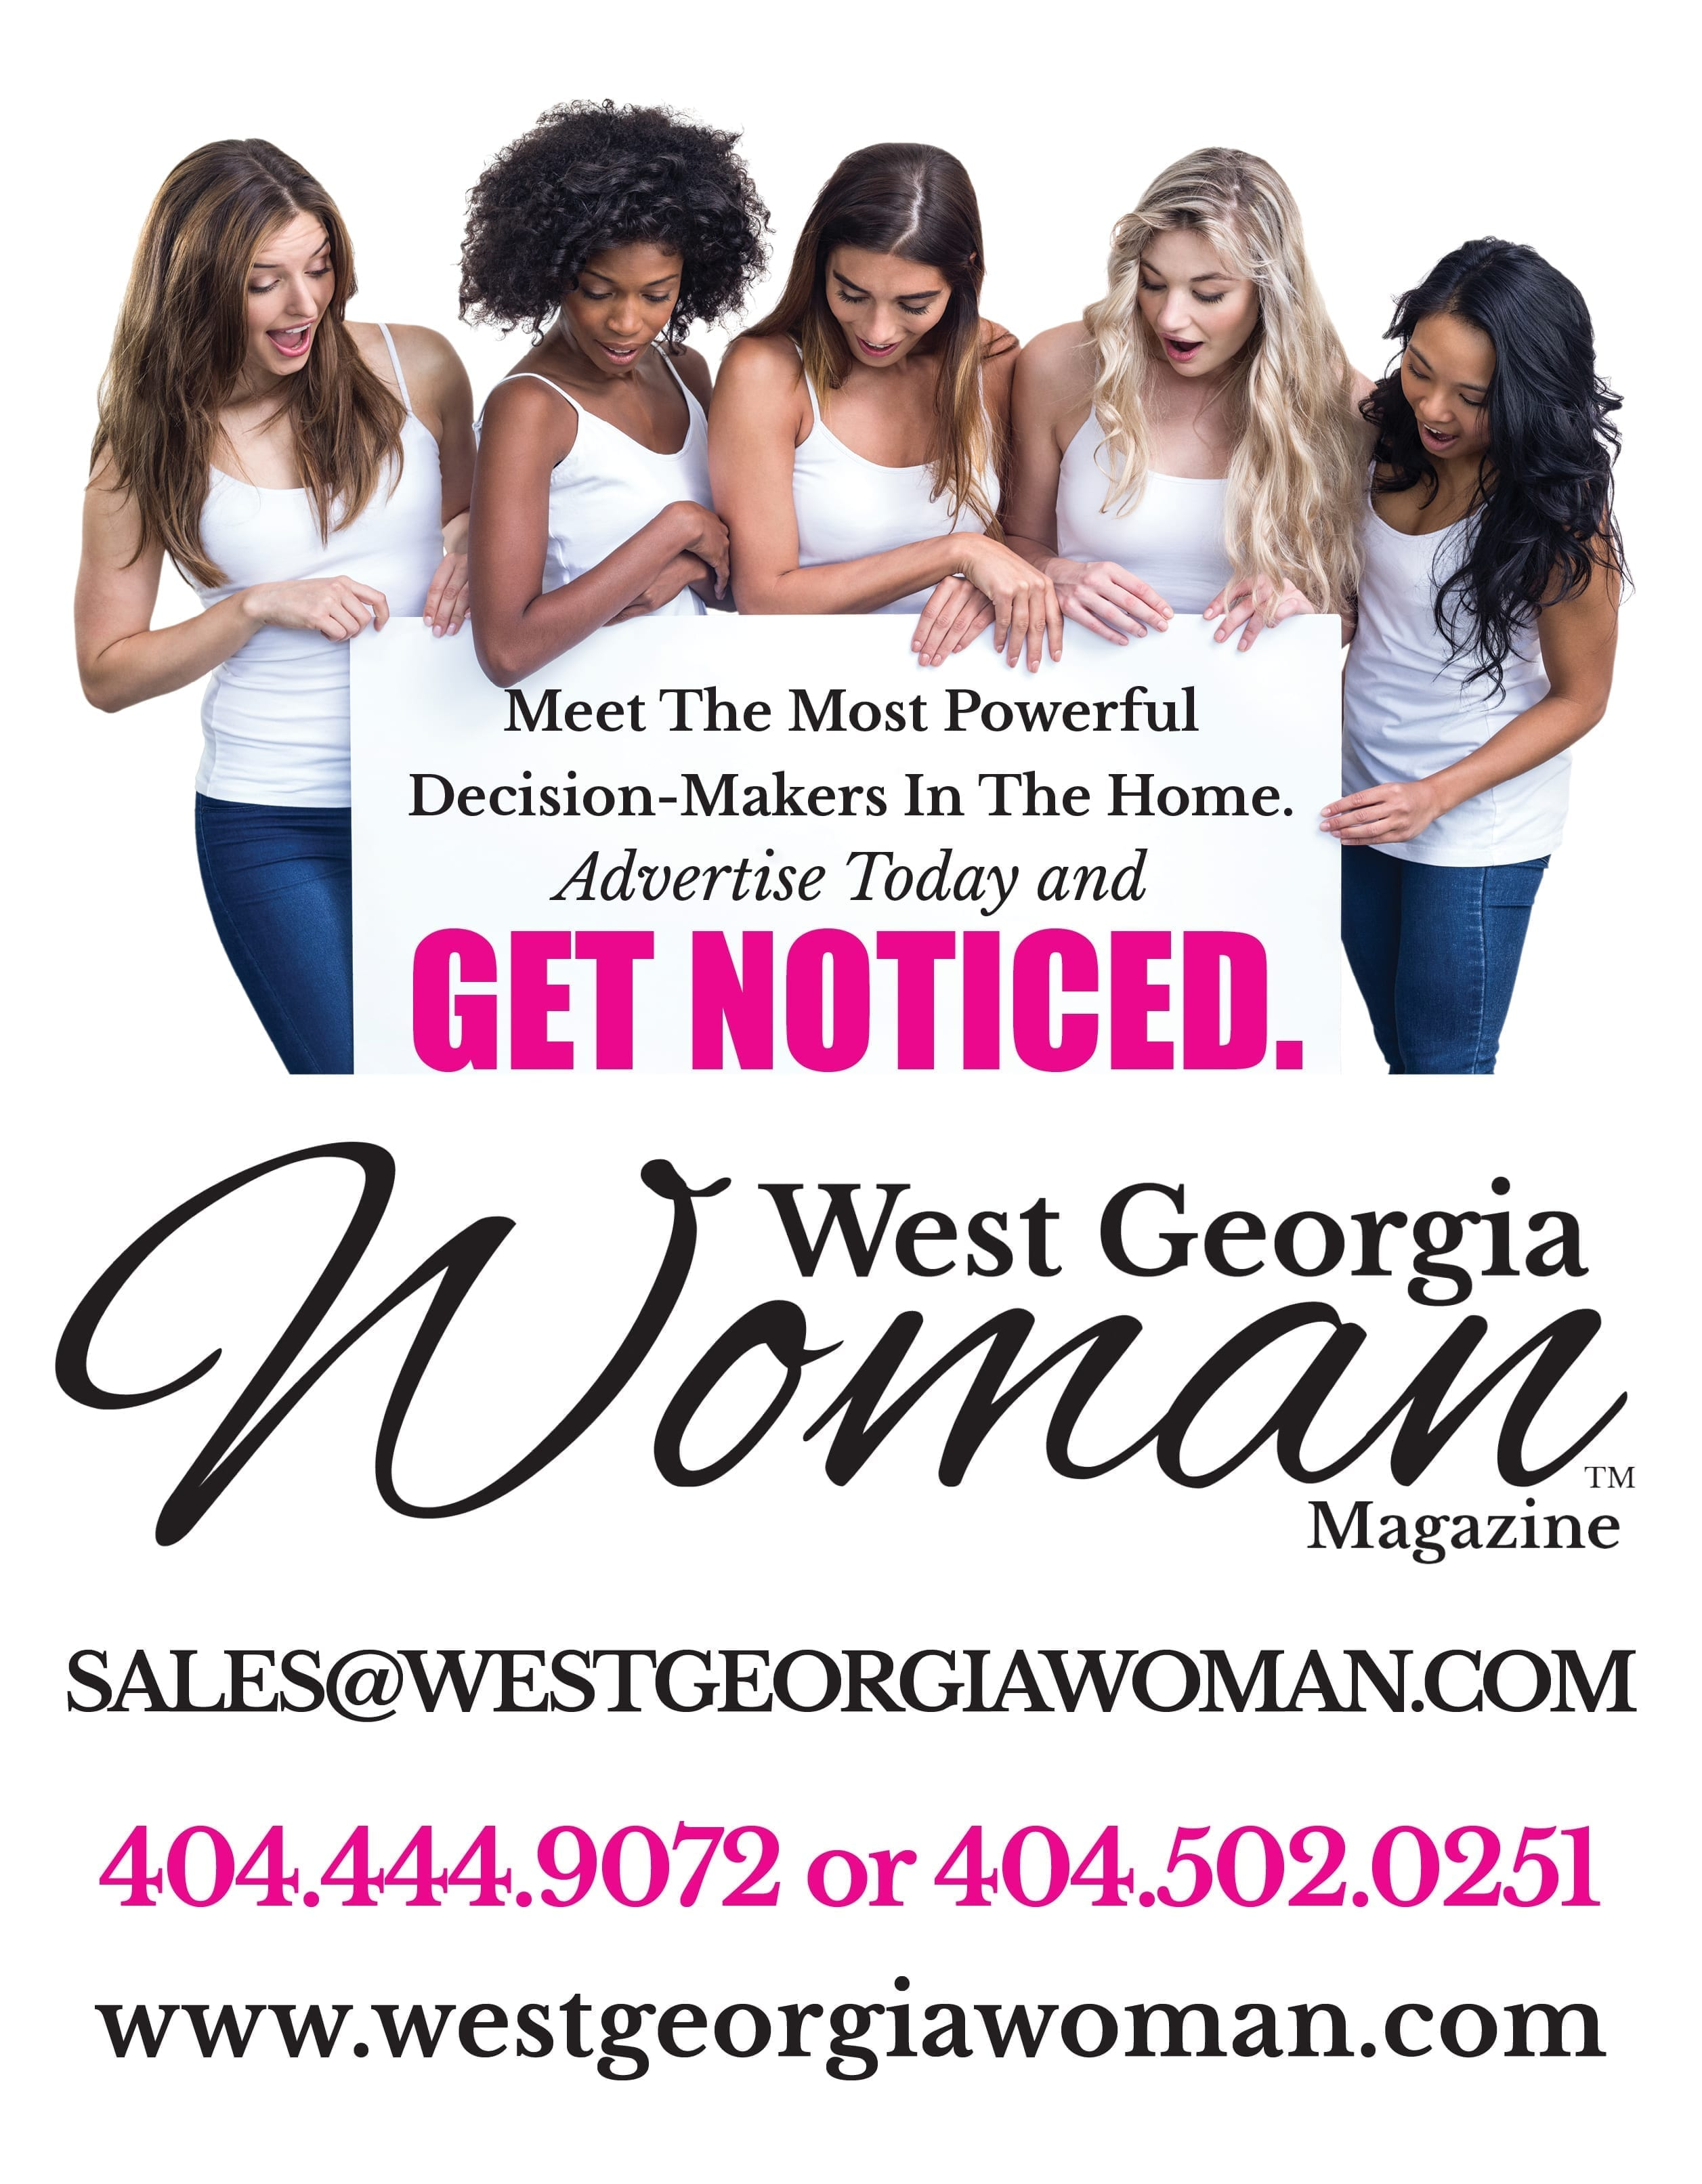 How to Choose a Womens Magazine How to Choose a Womens Magazine new images